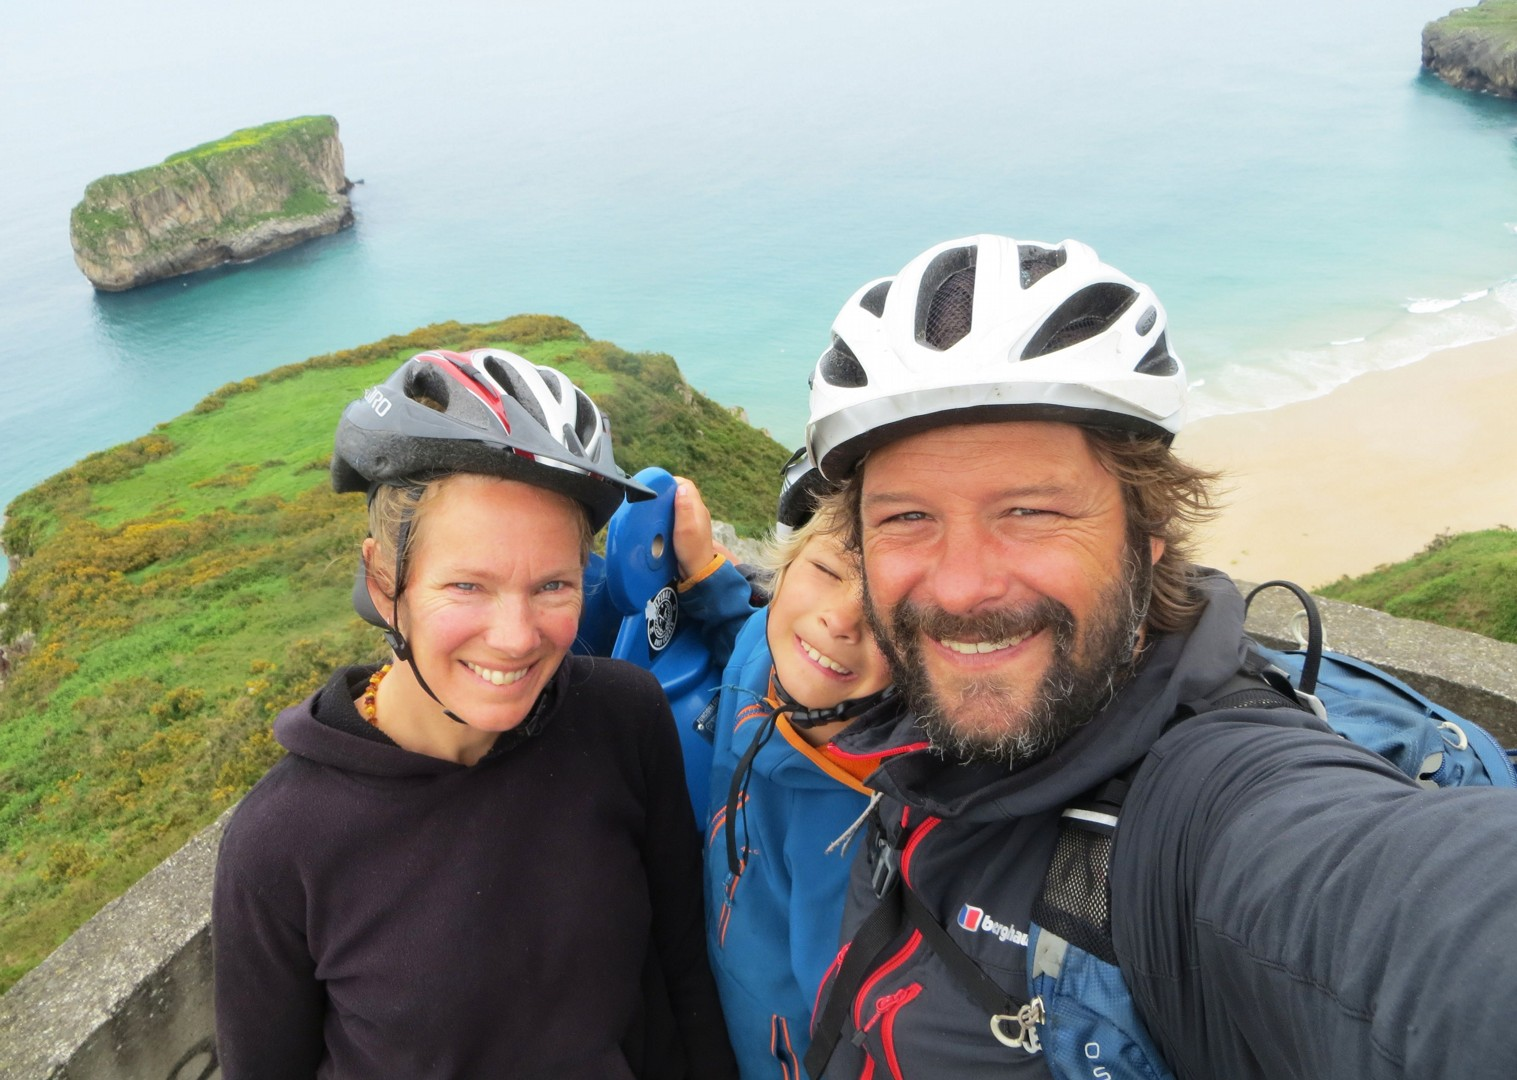 family-cycling-holiday-guides-northern-spain-coast.jpg - Spain - Asturian Coastal Ride - Guided Family Cycling Holiday - Family Cycling